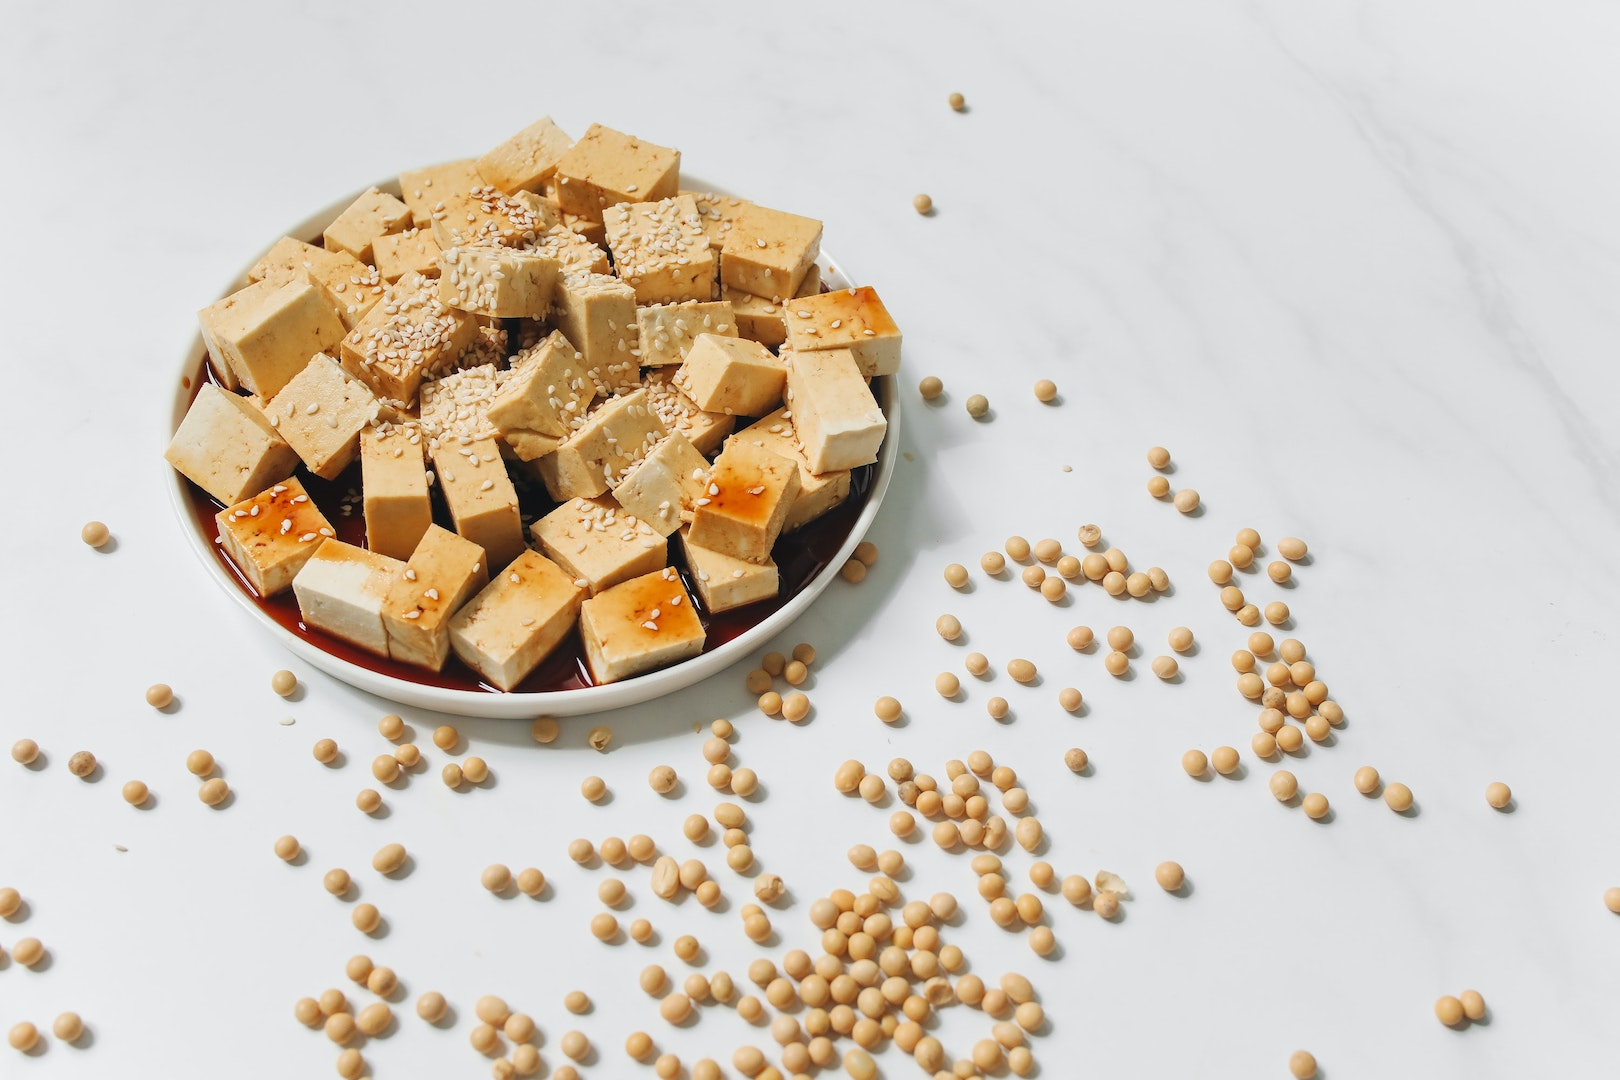 Image of tofu and herbal infusions made with LĒVO.